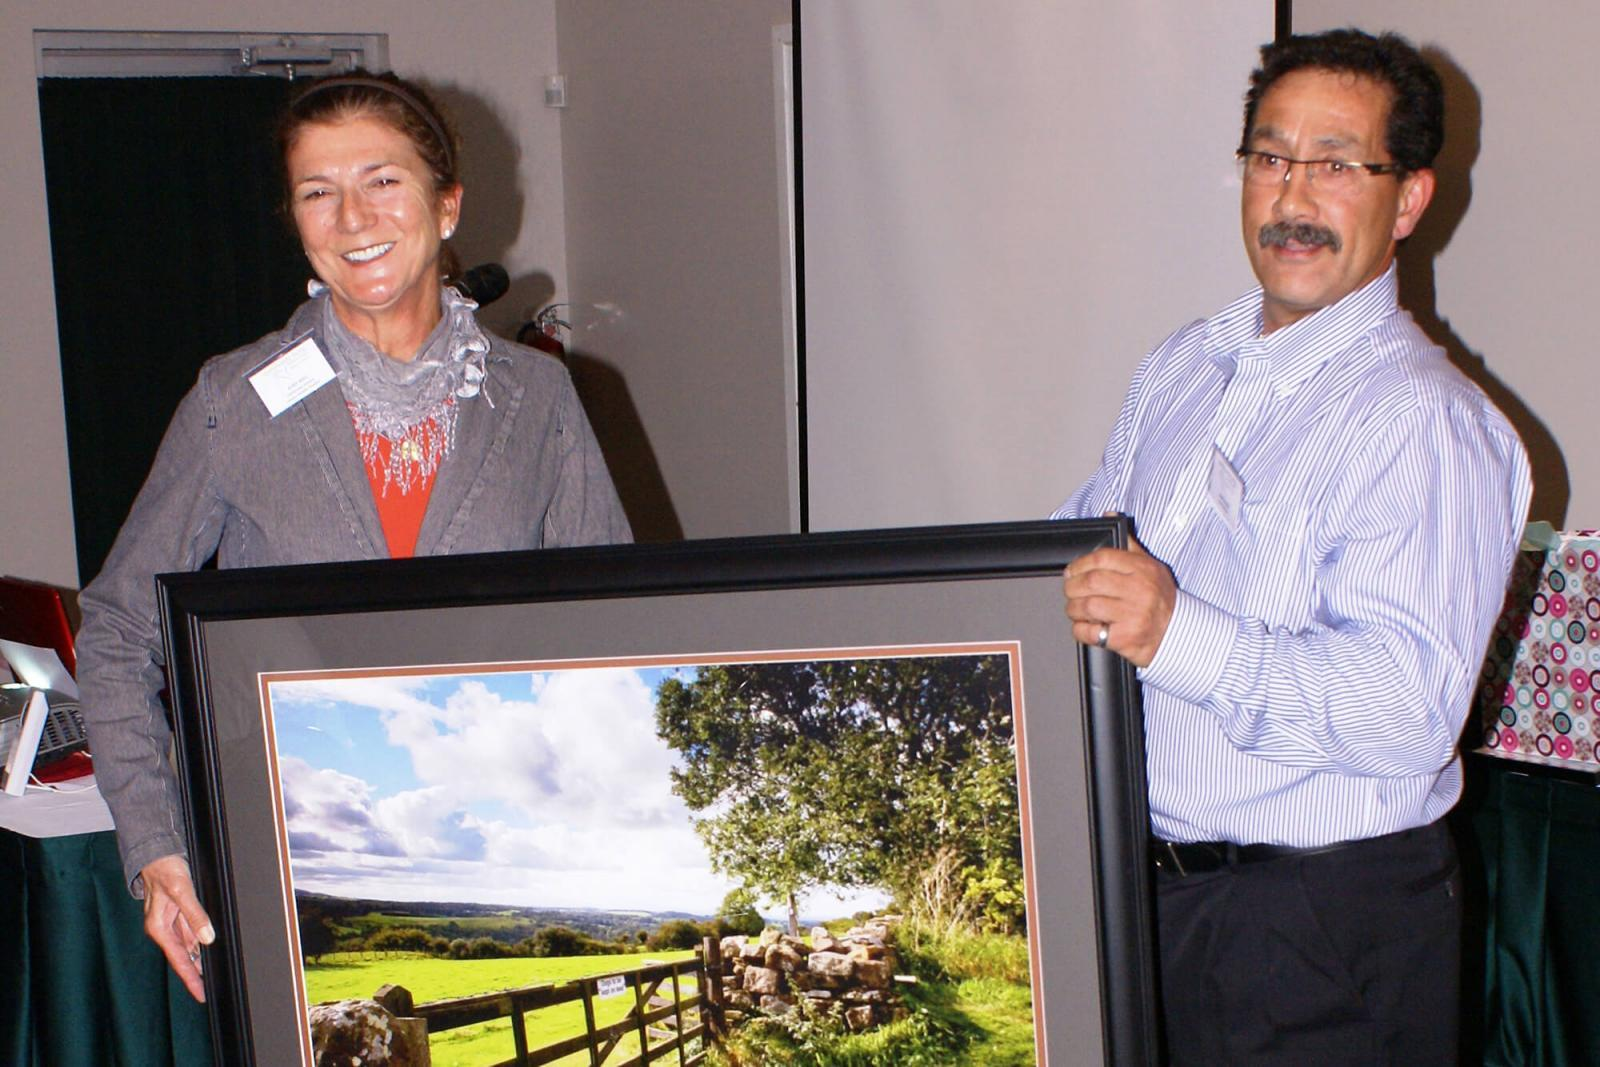 Judy Bell accepts the Community Partnership Award from John Klein, a board member with Community Living Quinte West.